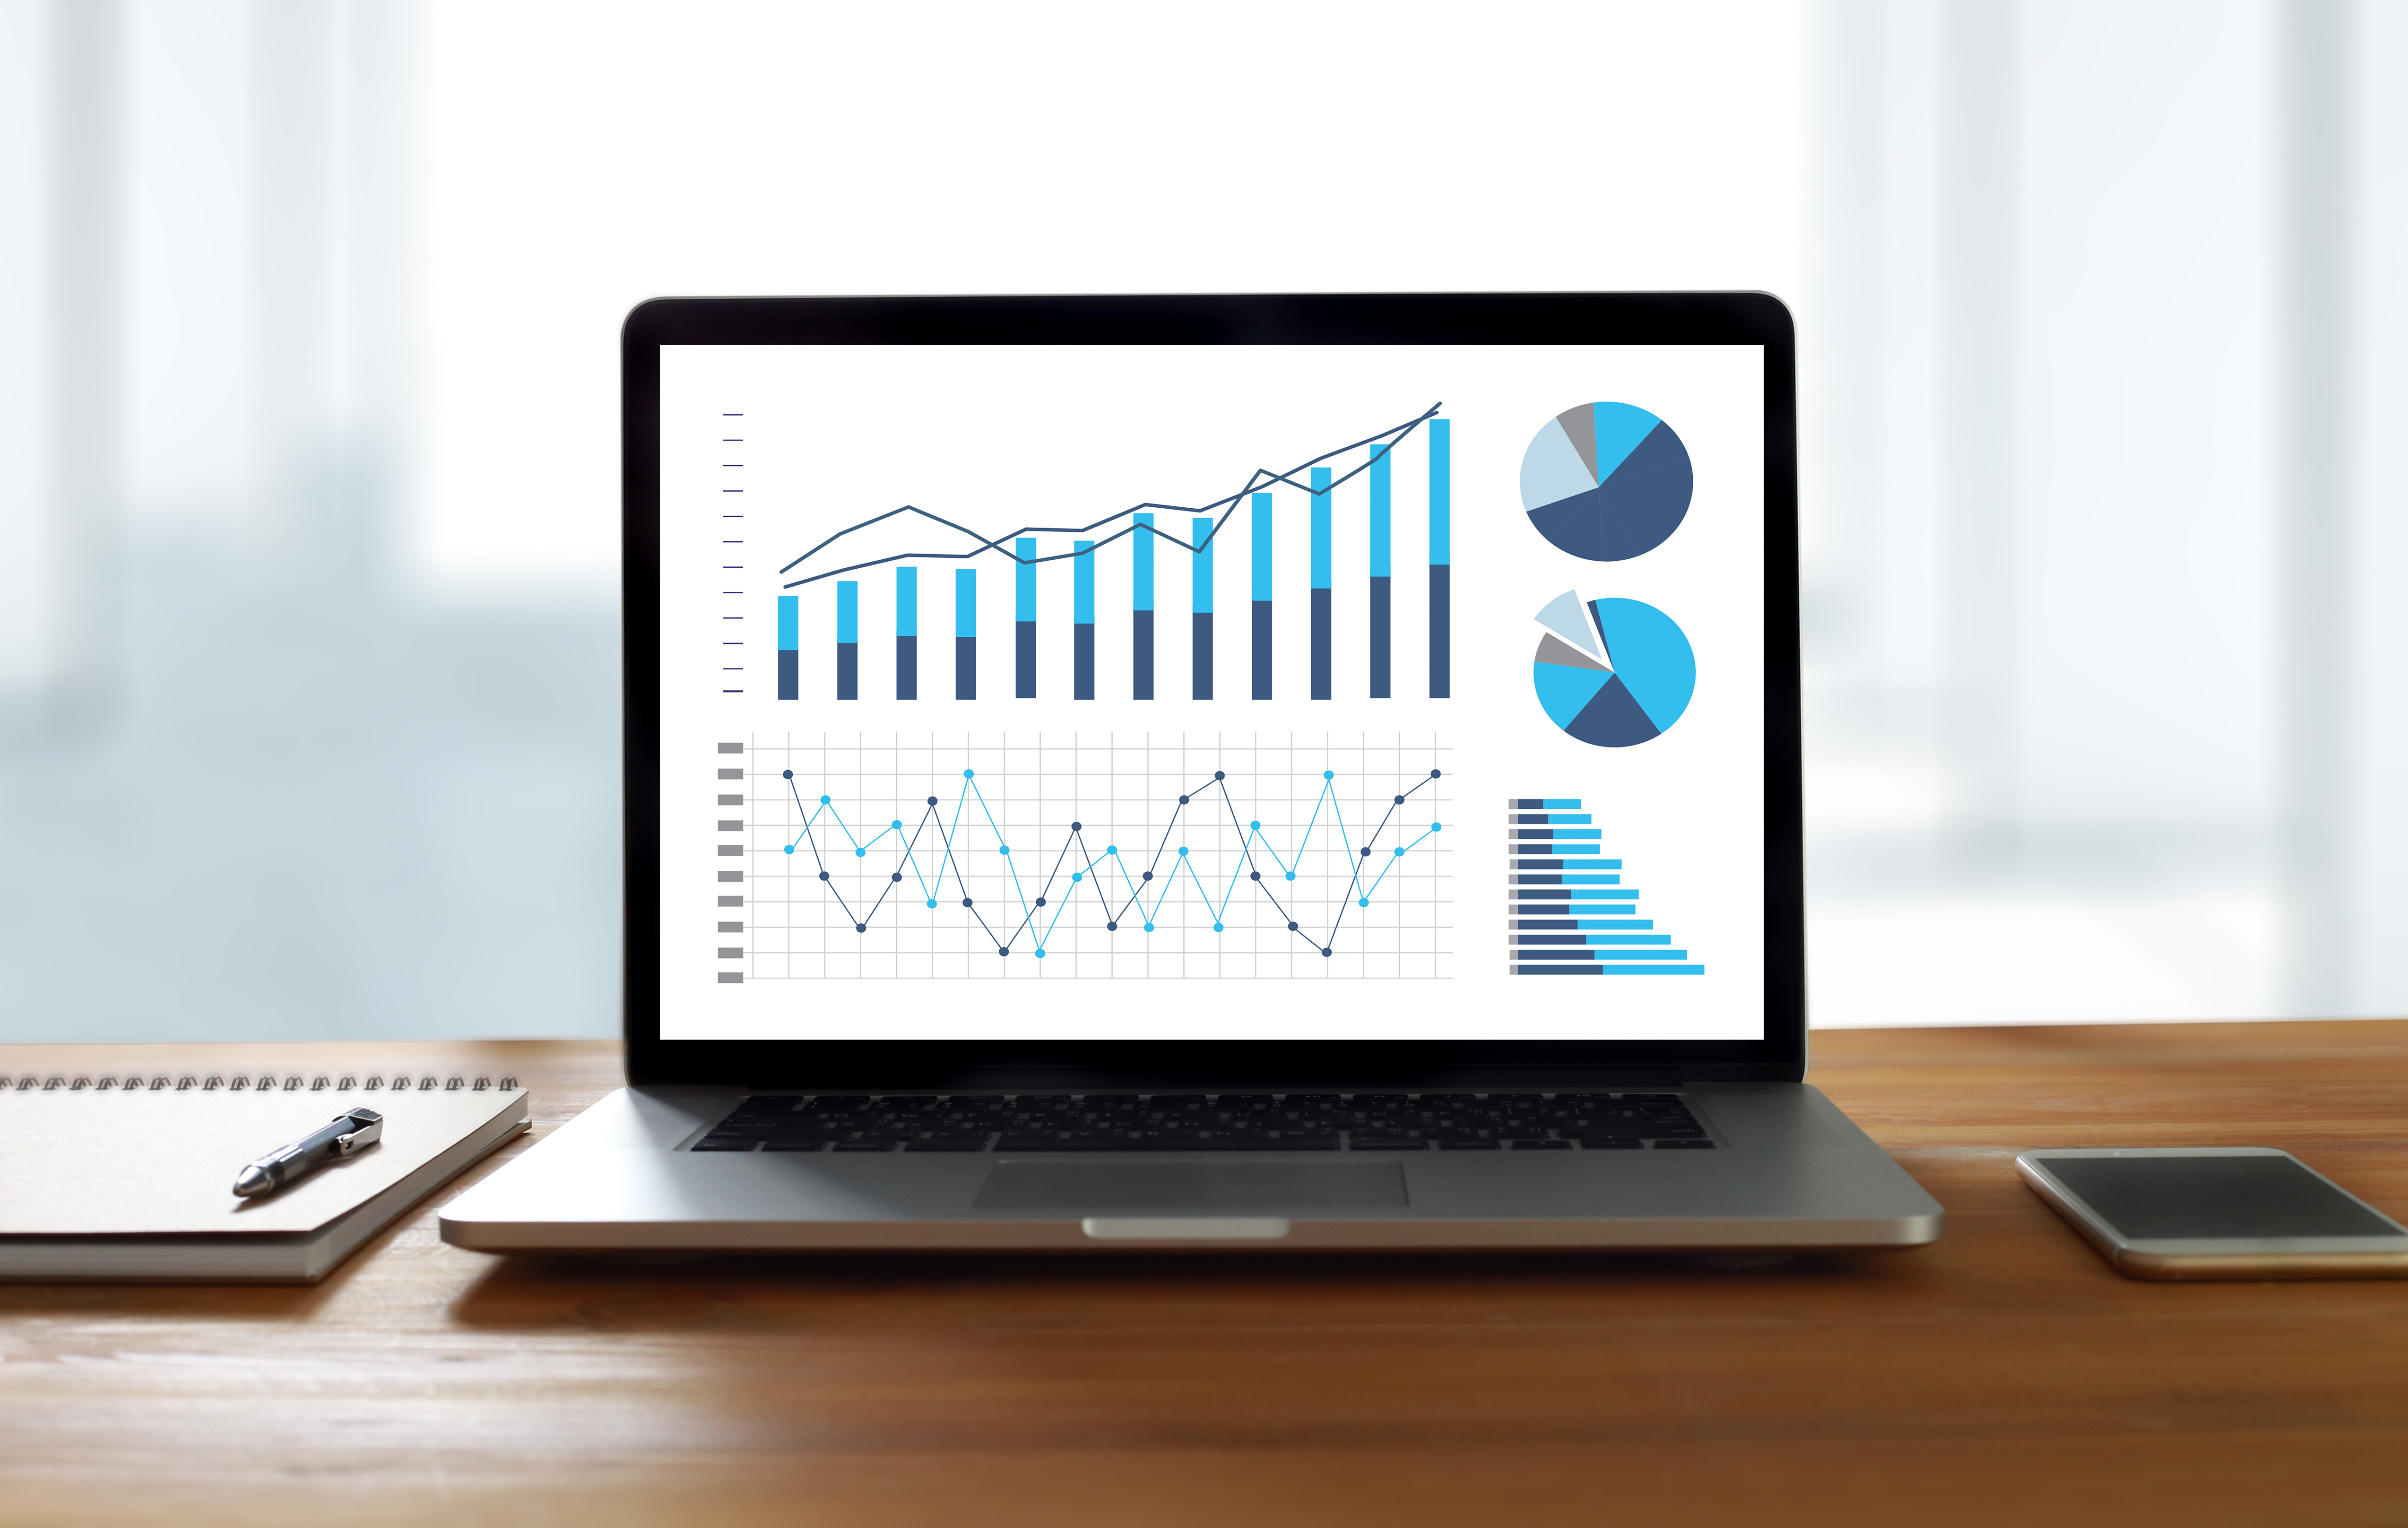 Statistics Analysis Business Data Diagram Growth Increase Marketing Concept , digital tablet and graph financial with social network diagram